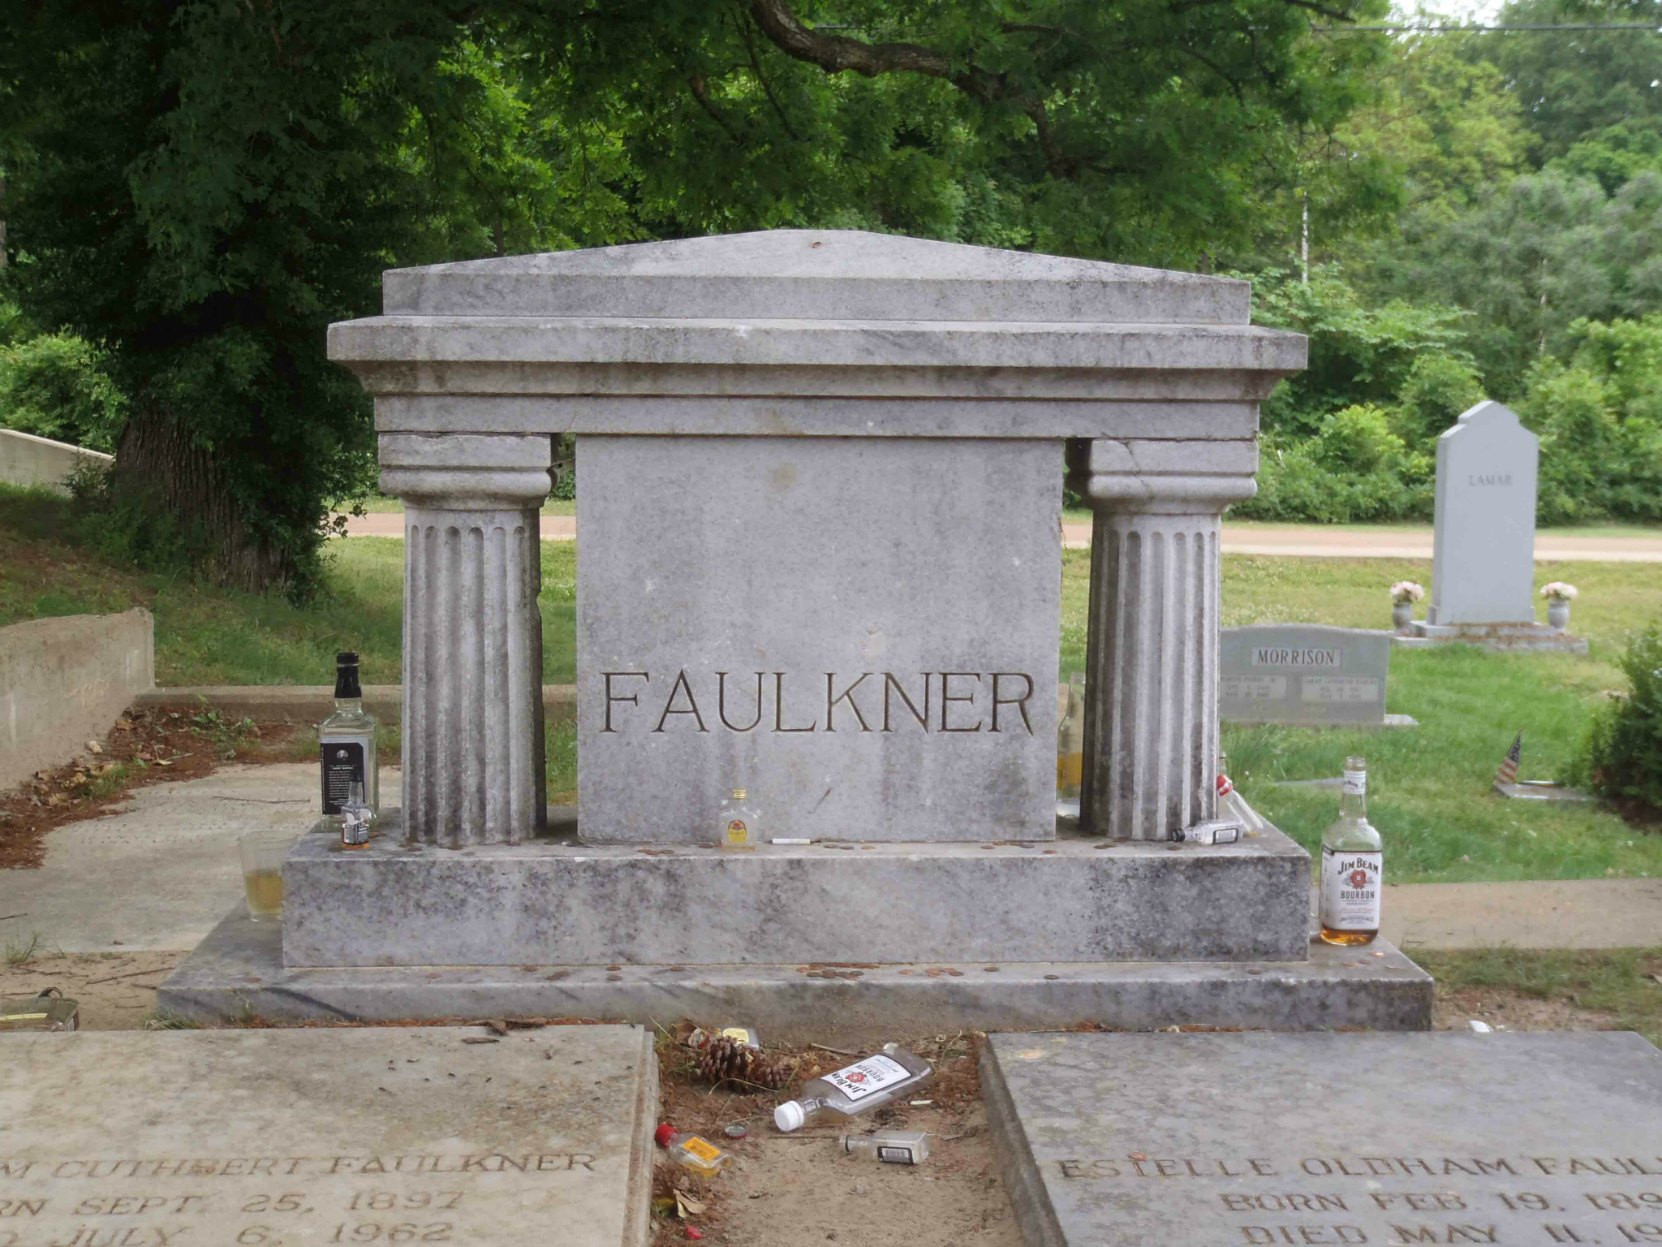 William Faulkner's grave in Oxford, Mississippi. The liquor bottles are tributes left at the grave by William Faulkner's fans.